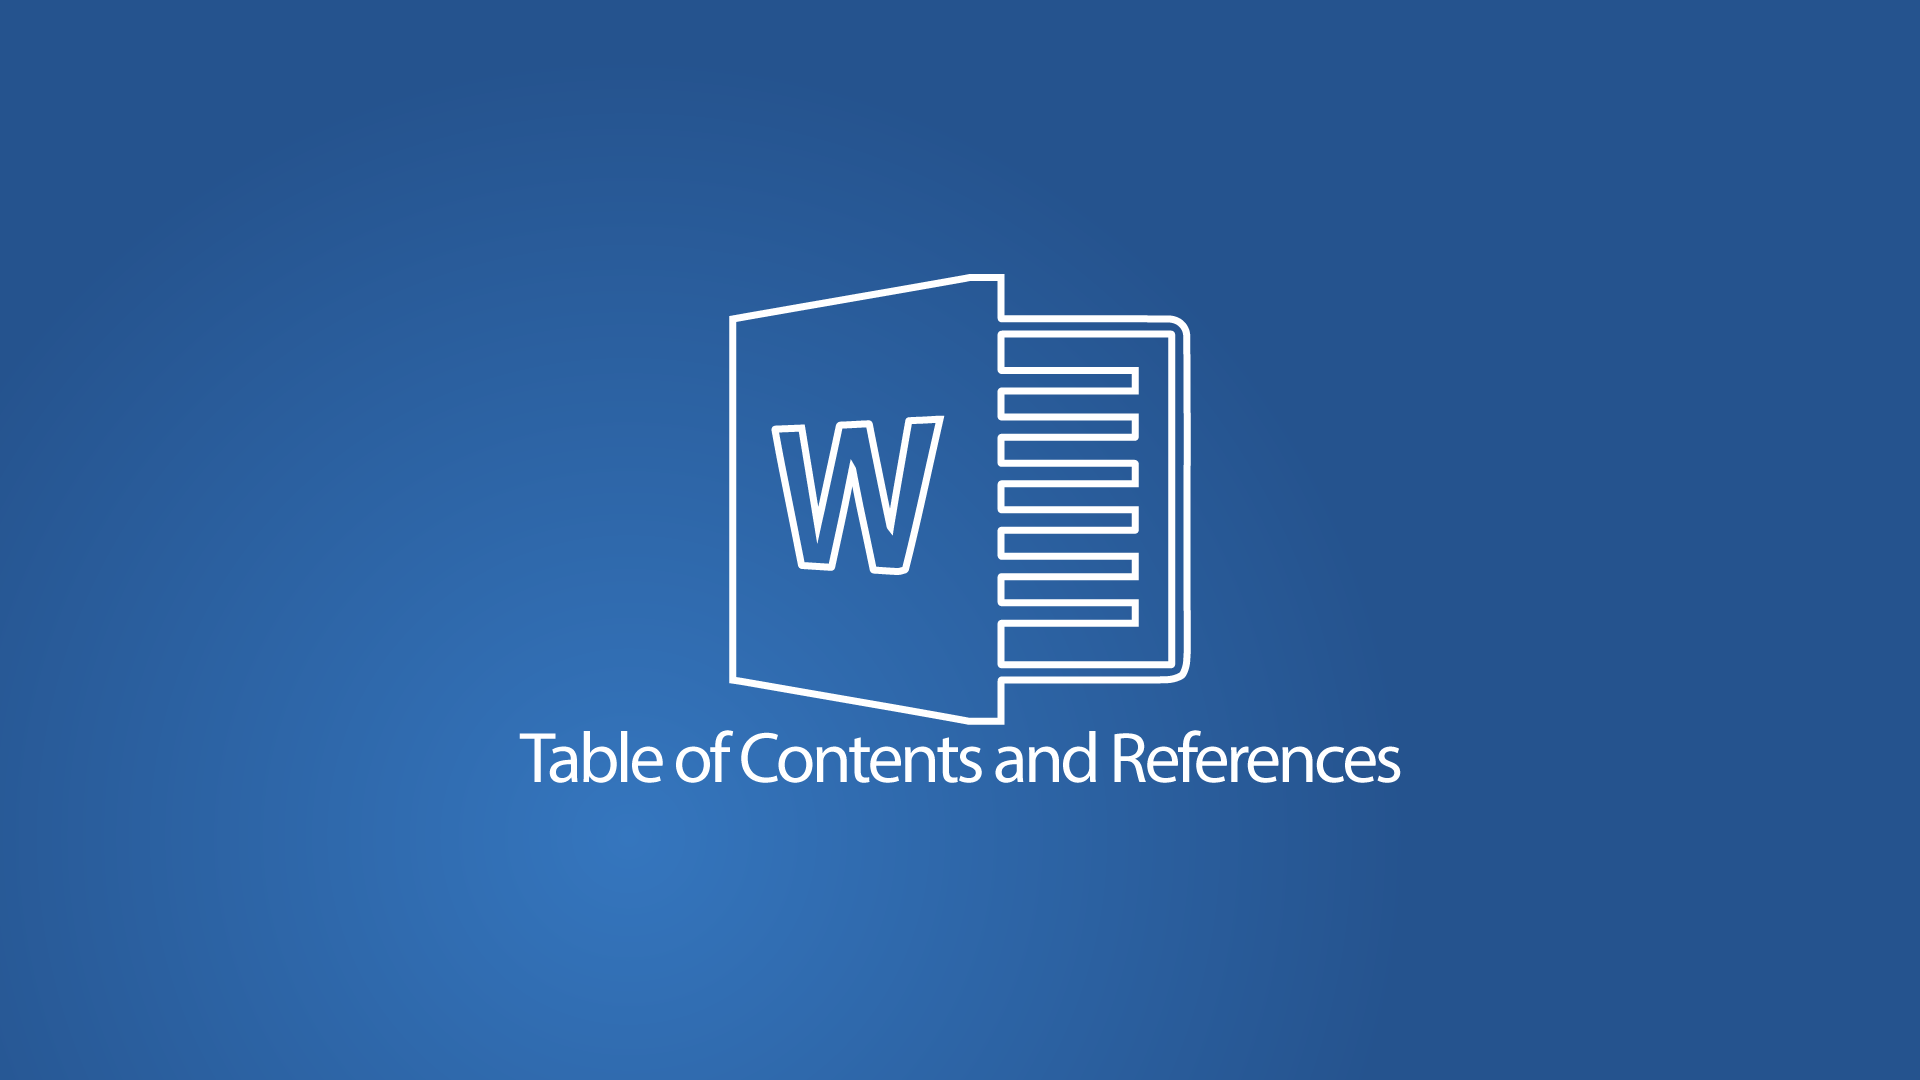 Word 2016 - Table of Contents and References